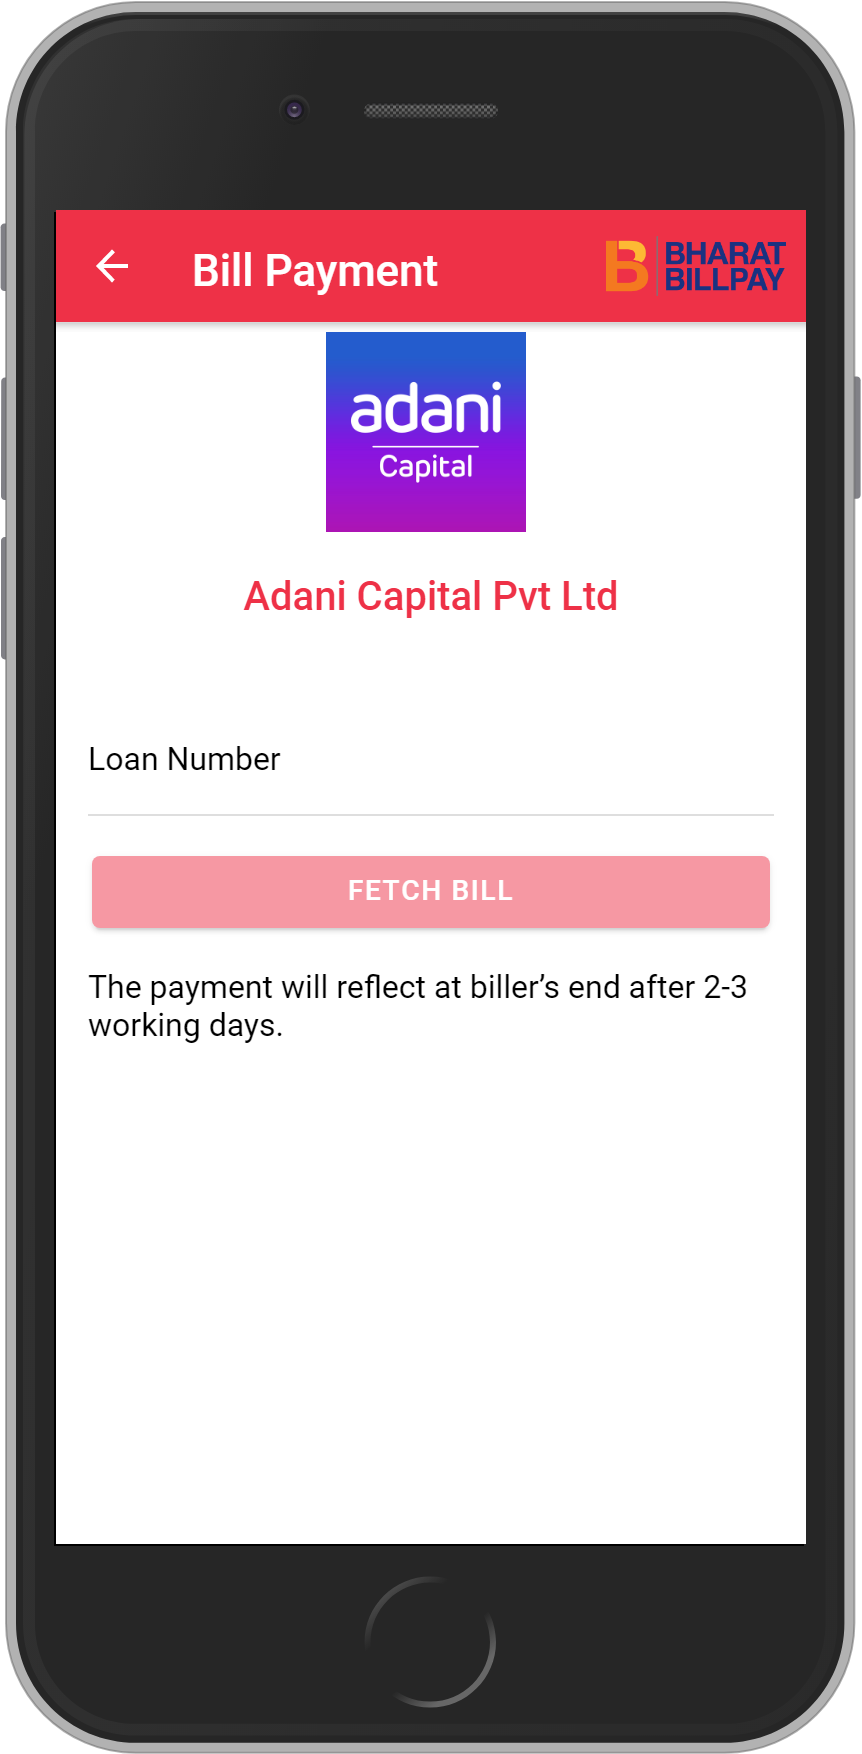 Get UNLIMITED <b>0.1%</b> CASHBACK on Adani Capital Pvt Ltd Loan Payment.